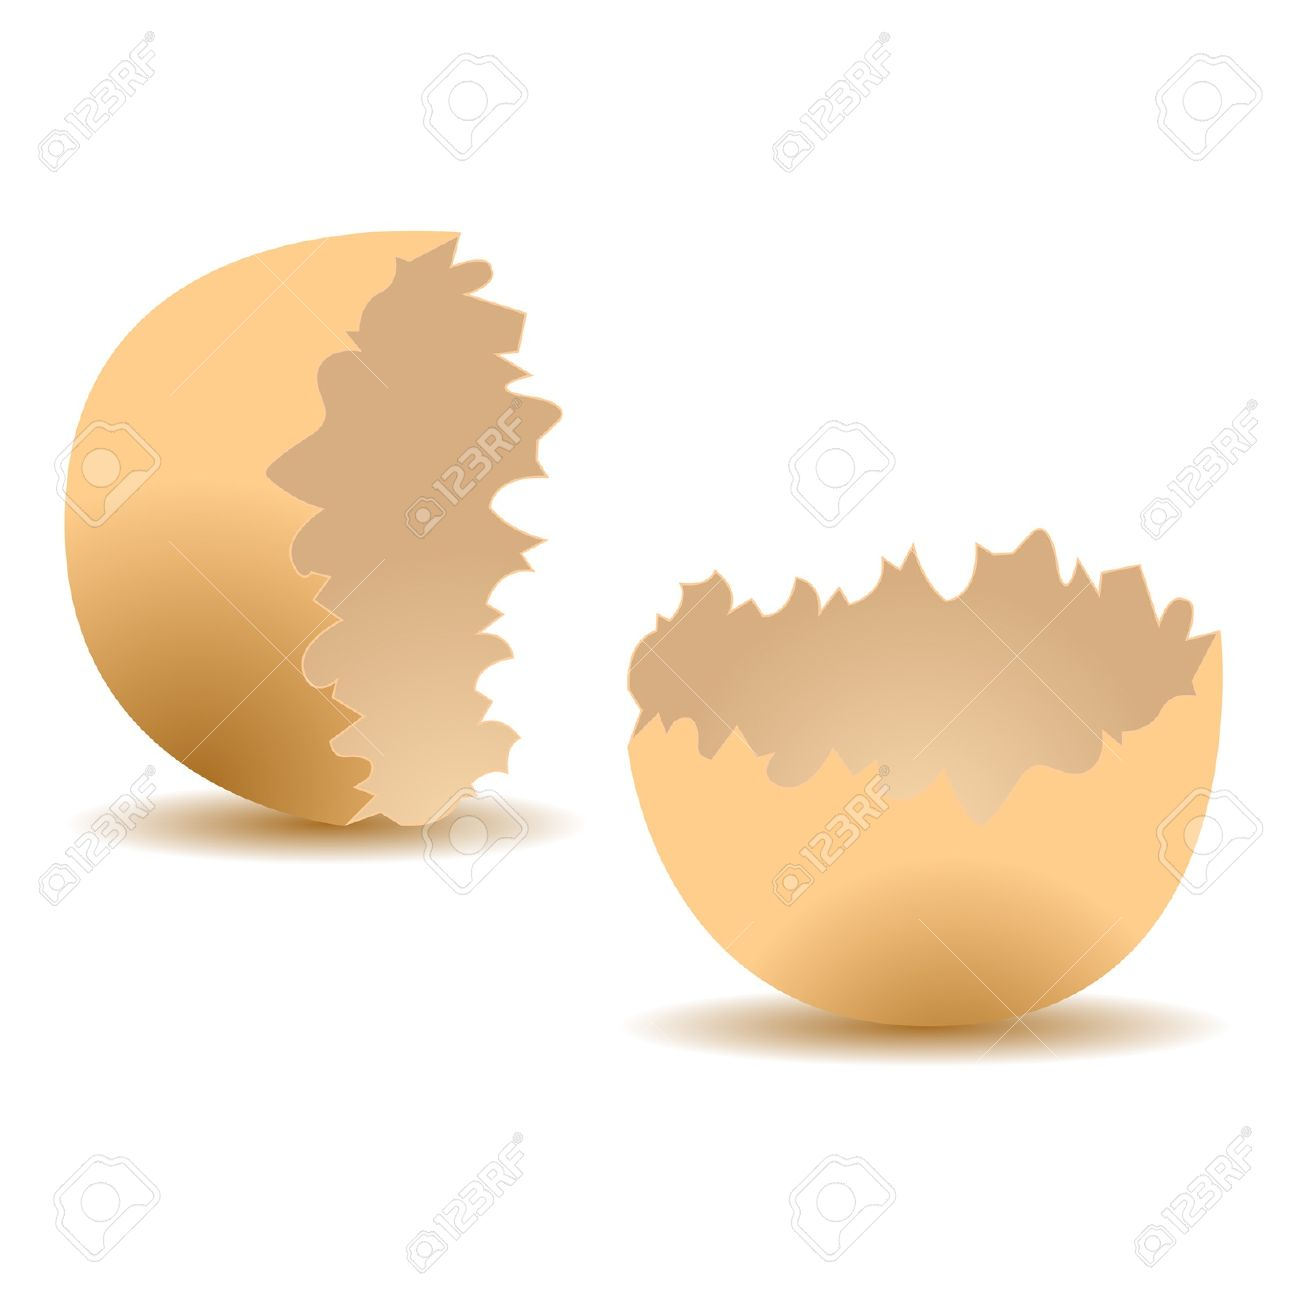 Cracked Egg Shell Isolated Over White Background Royalty Free.